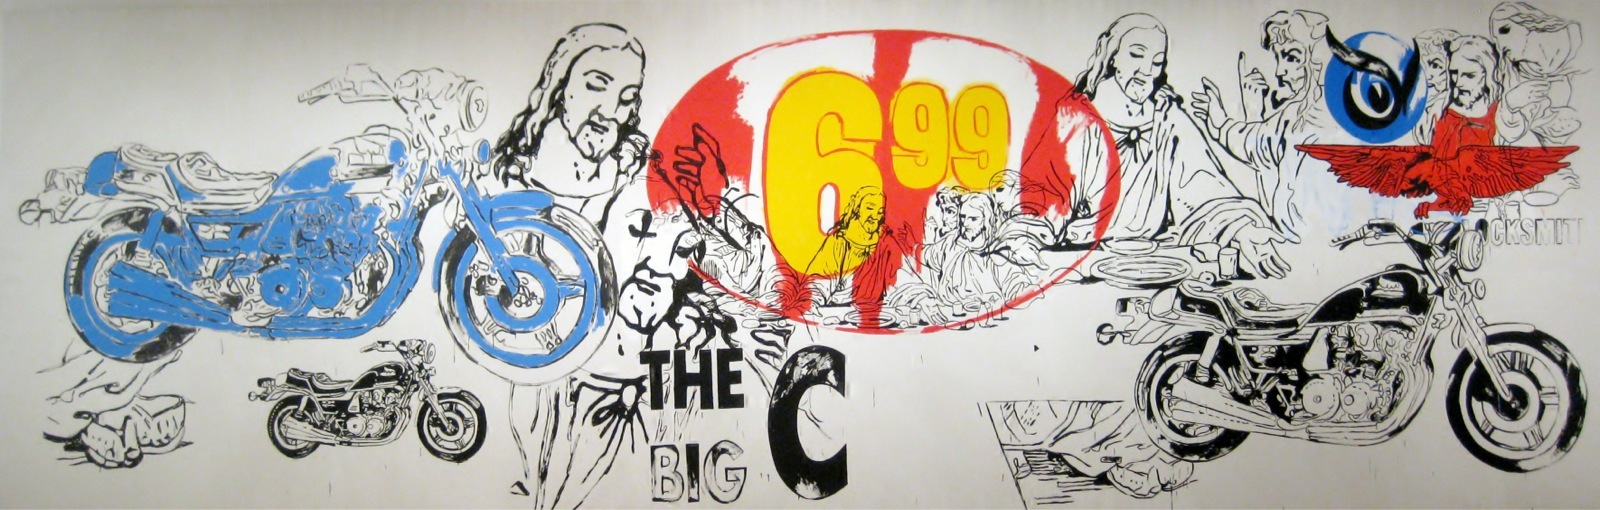 The Last Supper - The BIg C (1986) by Andy Warhol